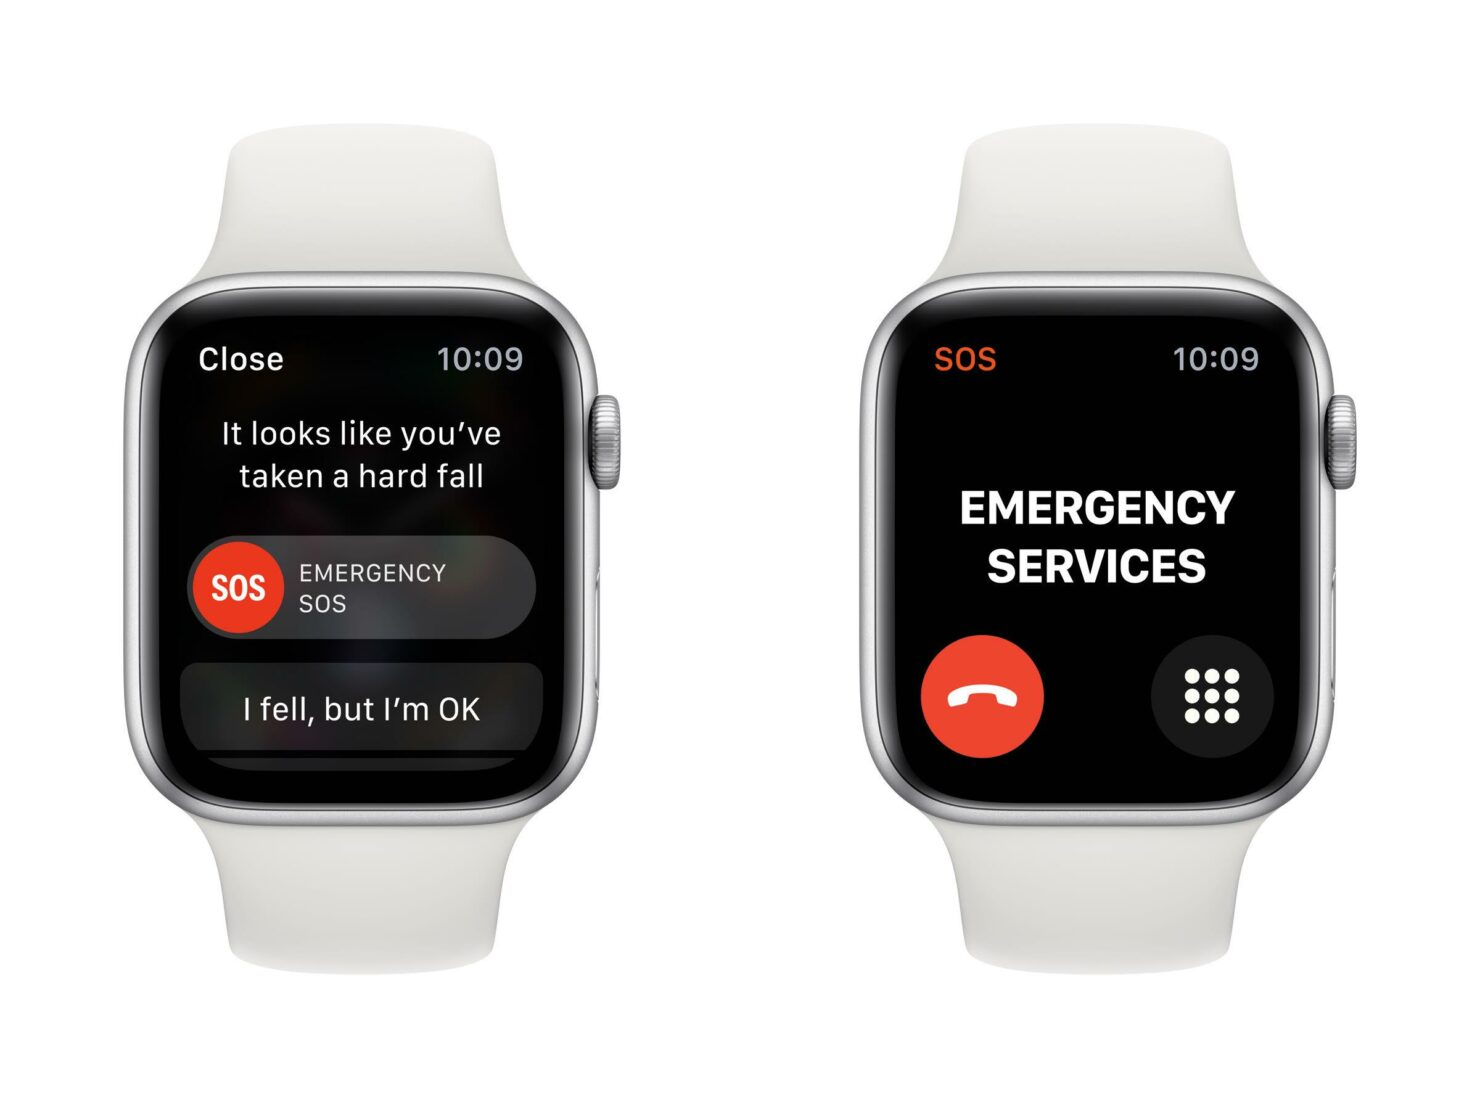 Apple Watch Praised After It Called 911 Using the Fall Detection Feature When a Man Wasn't Responding